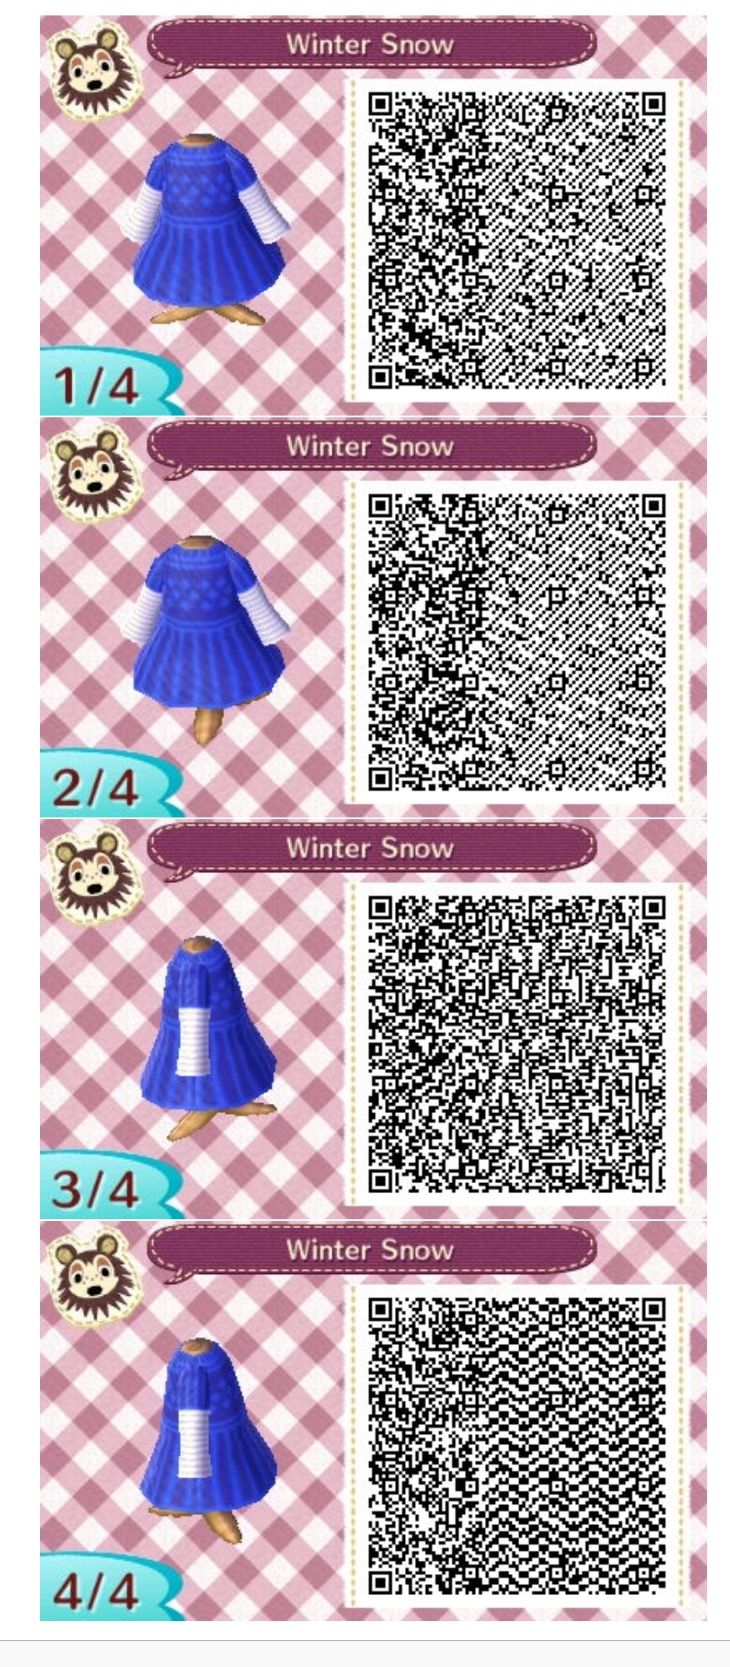 Ac Qr Ateneo Source Animal Crossing New Leaf Codes Cute Winter Dresses The